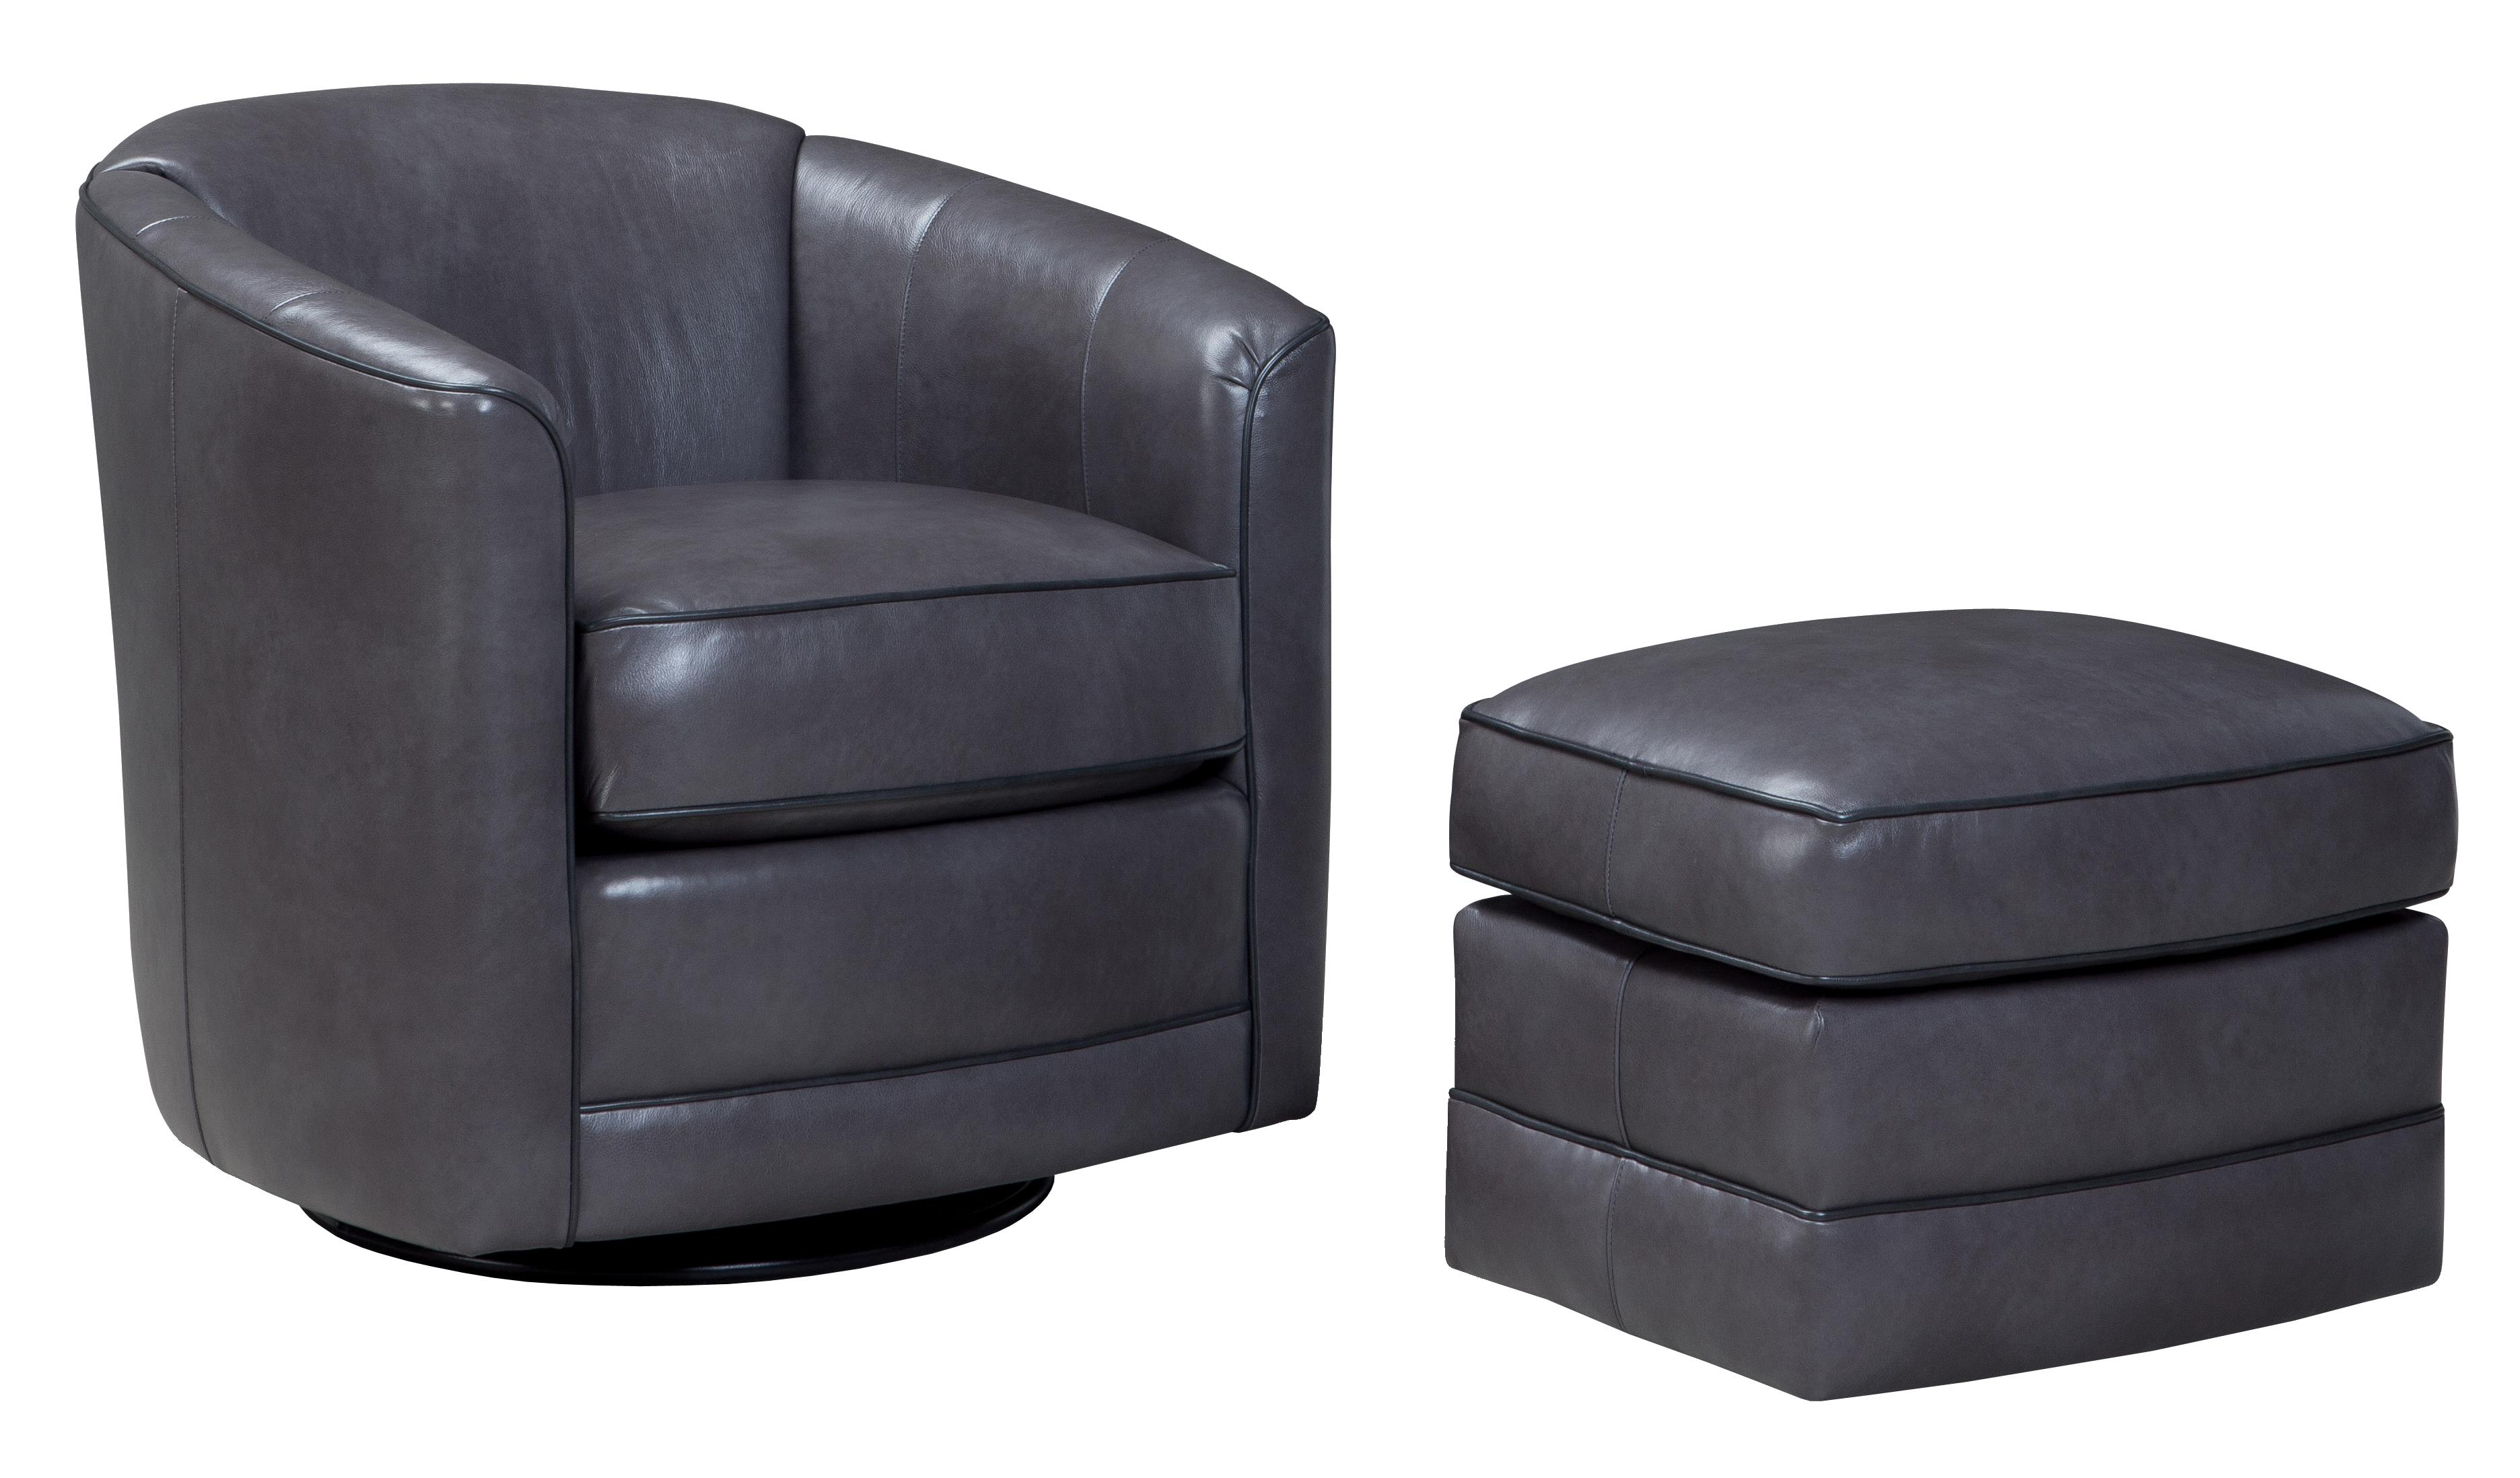 Smith Brothers 506 506l 58 Swivel Glider Chair With Barrel Back Dunk Bright Furniture